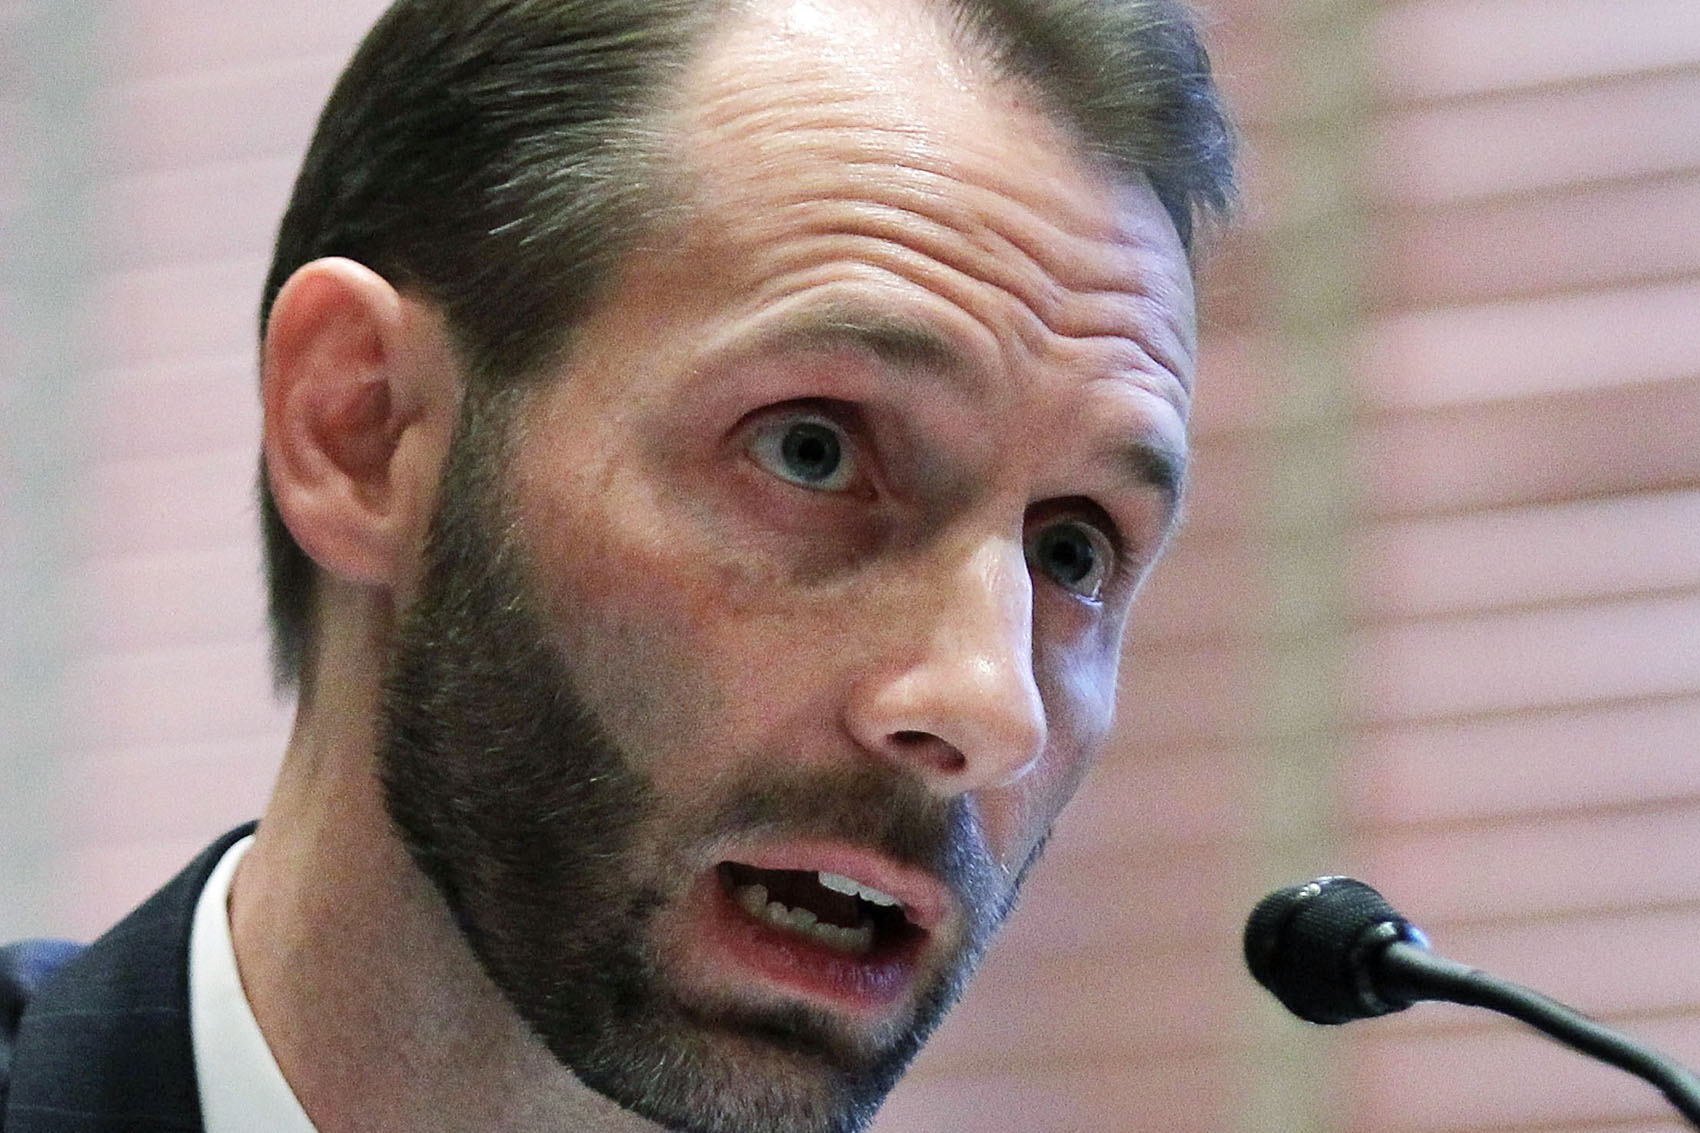 Matthew Spencer Petersen, pictured here in 2011, struggled to answer basic legal questions posed by Republican Sen. John Kennedy at a confirmation hearing Wednesday. Petersen is one of President Trump's nominees to be a district judge for the District of Columbia. (Alex Wong/Getty Images)